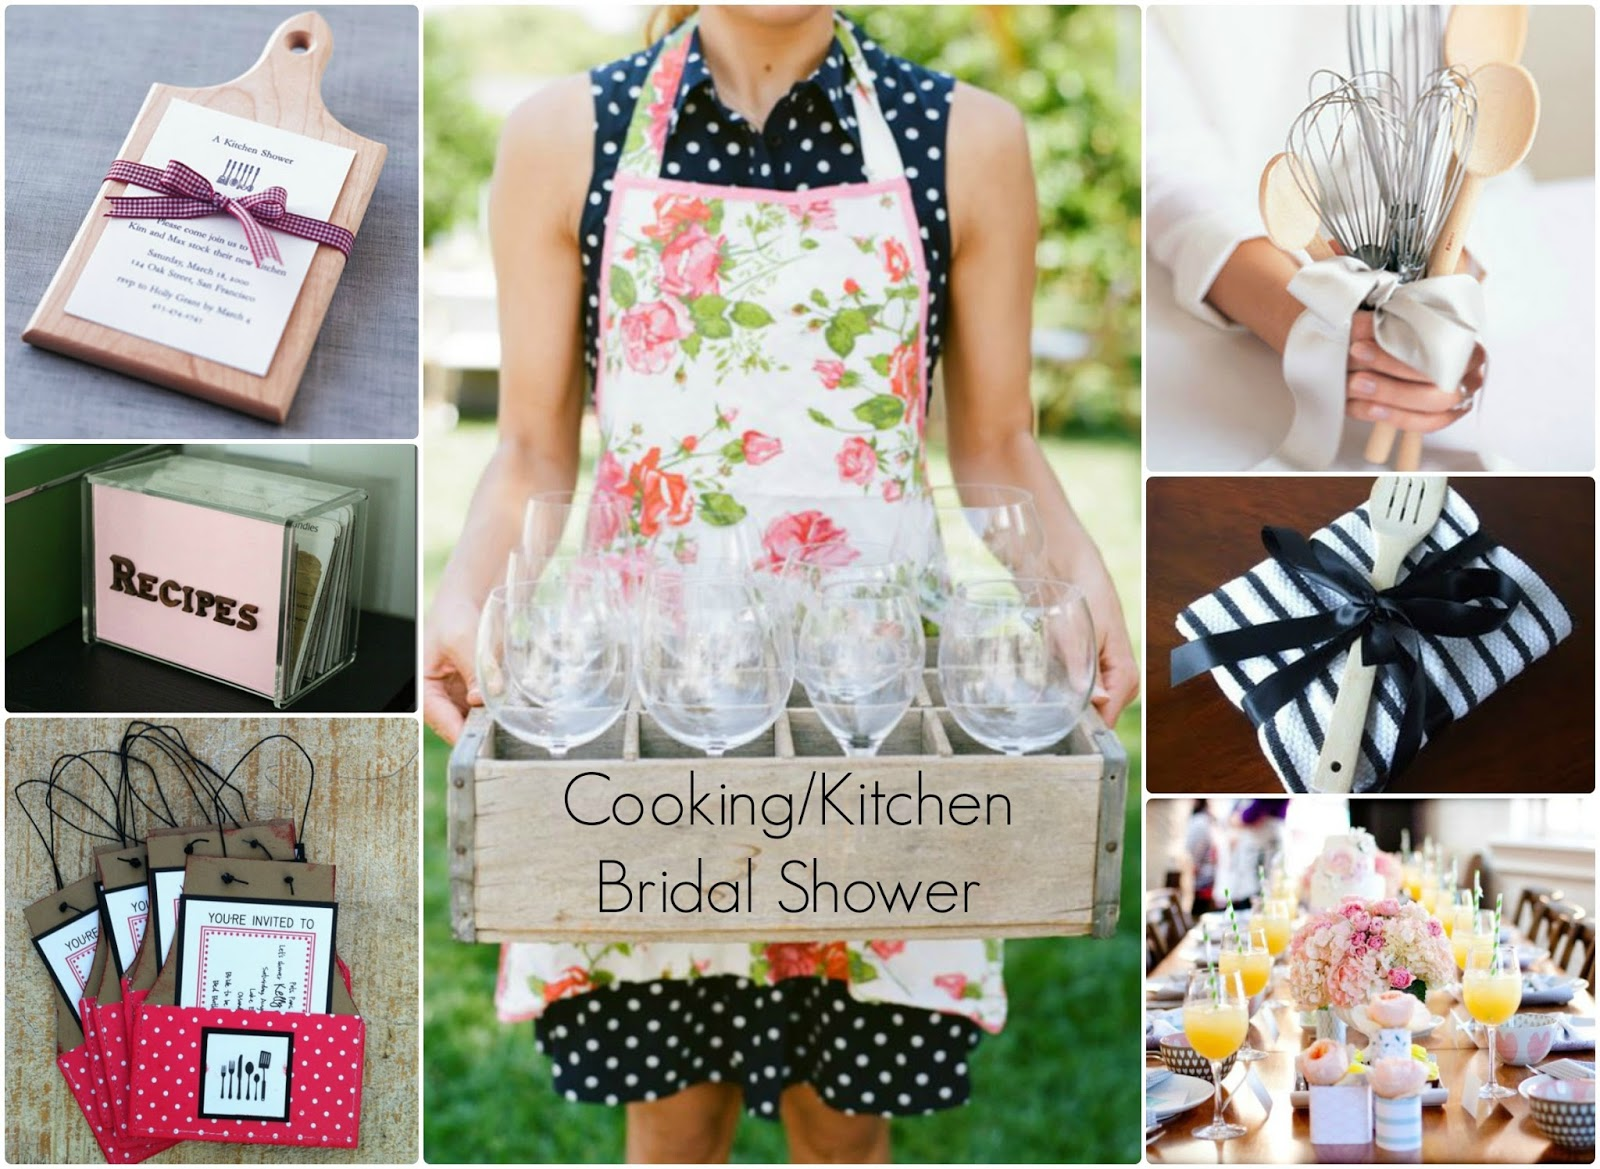 Cooking Or Kitchen Themed Bridal Shower Inspiration Perfete